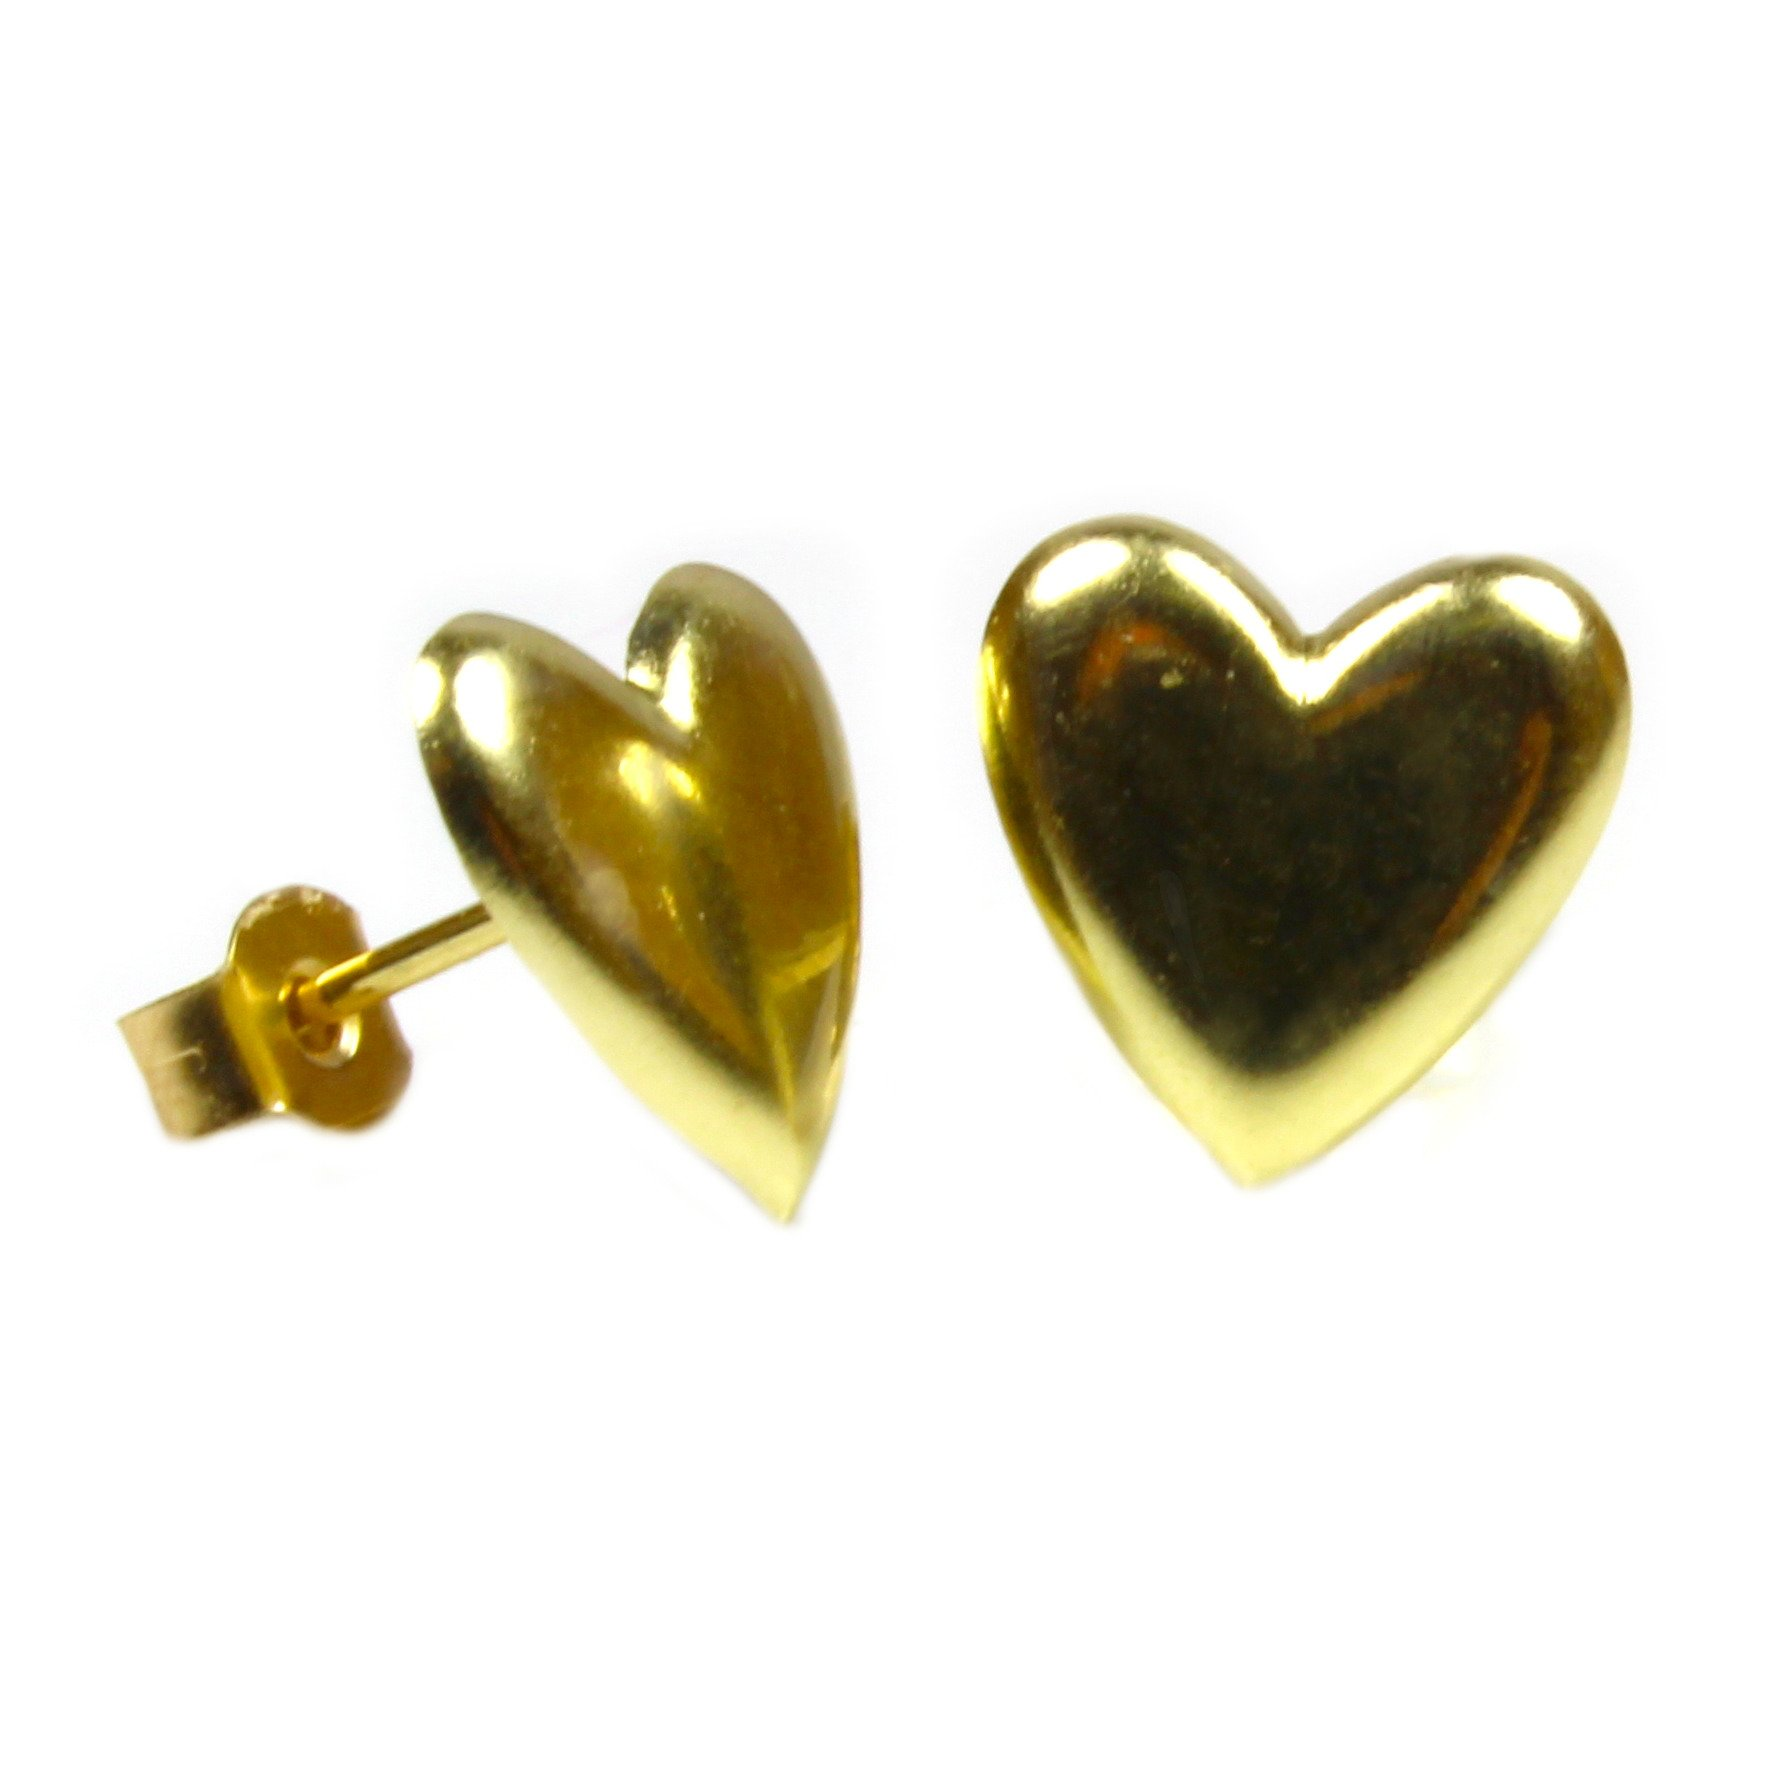 9ct yellow gold heart earrings